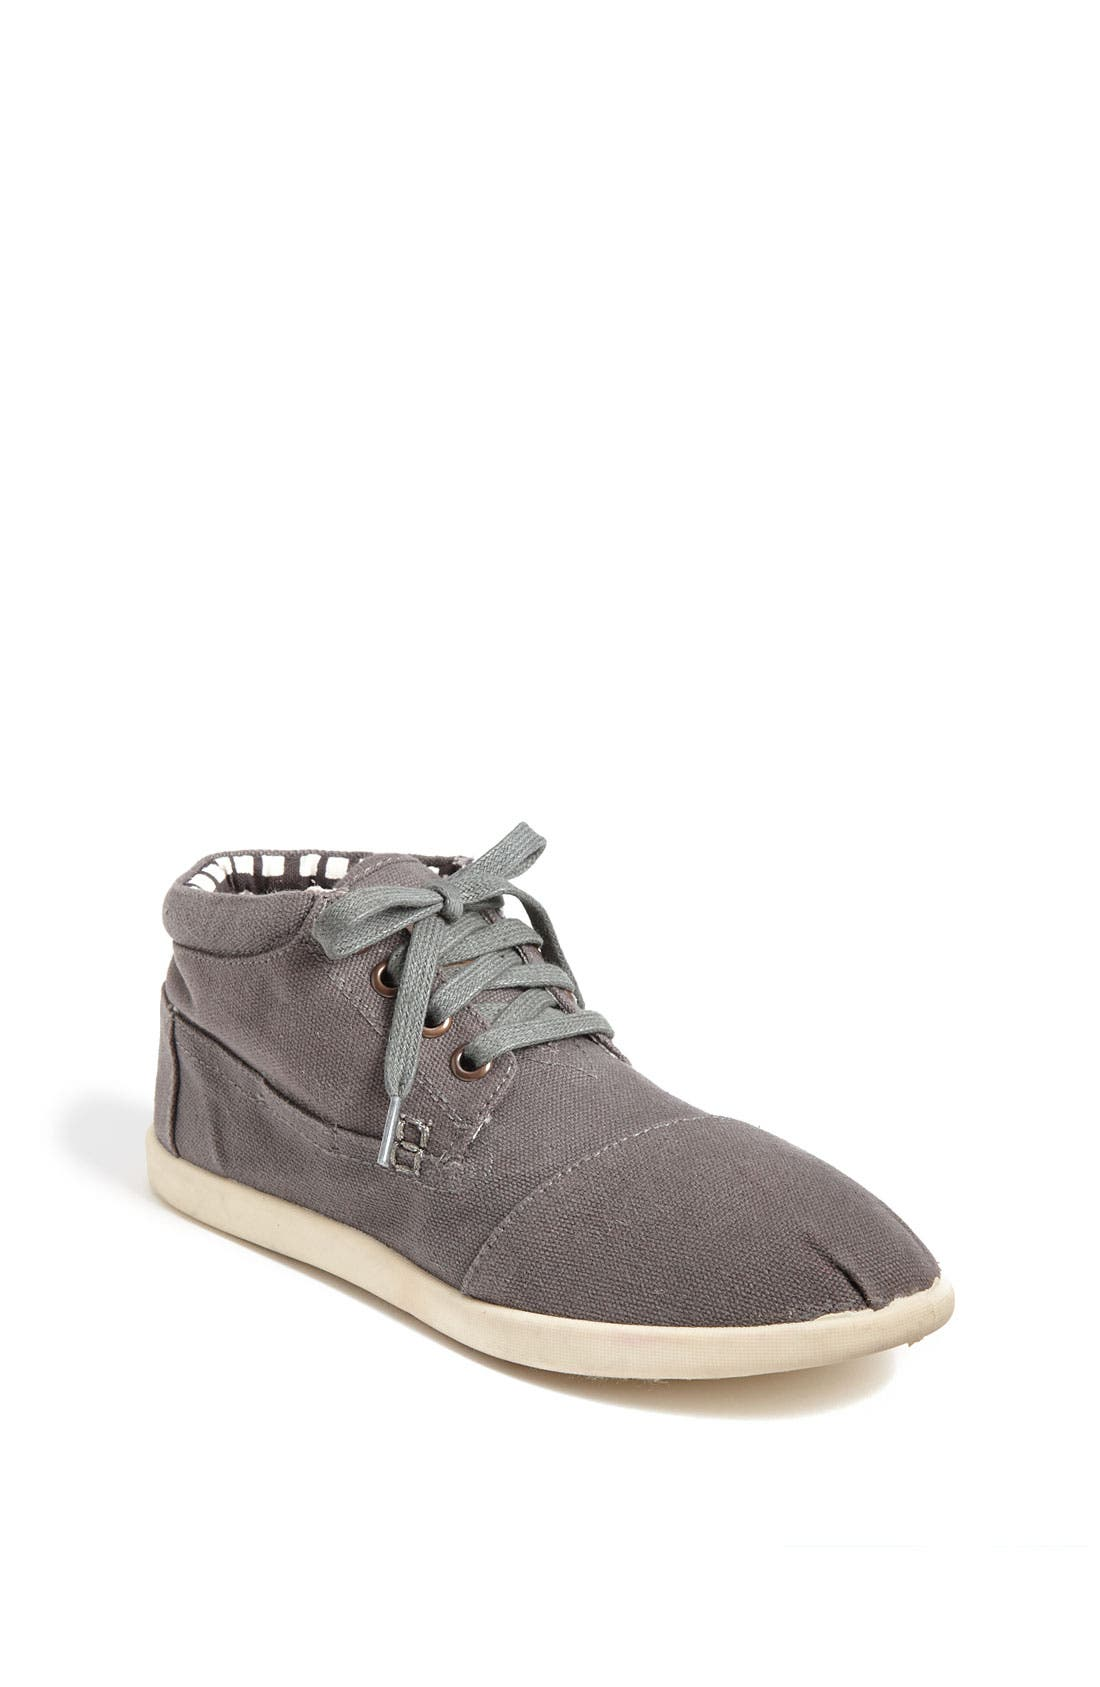 Main Image - TOMS 'Botas - Youth' Canvas Boot (Toddler, Little Kid & Big Kid)